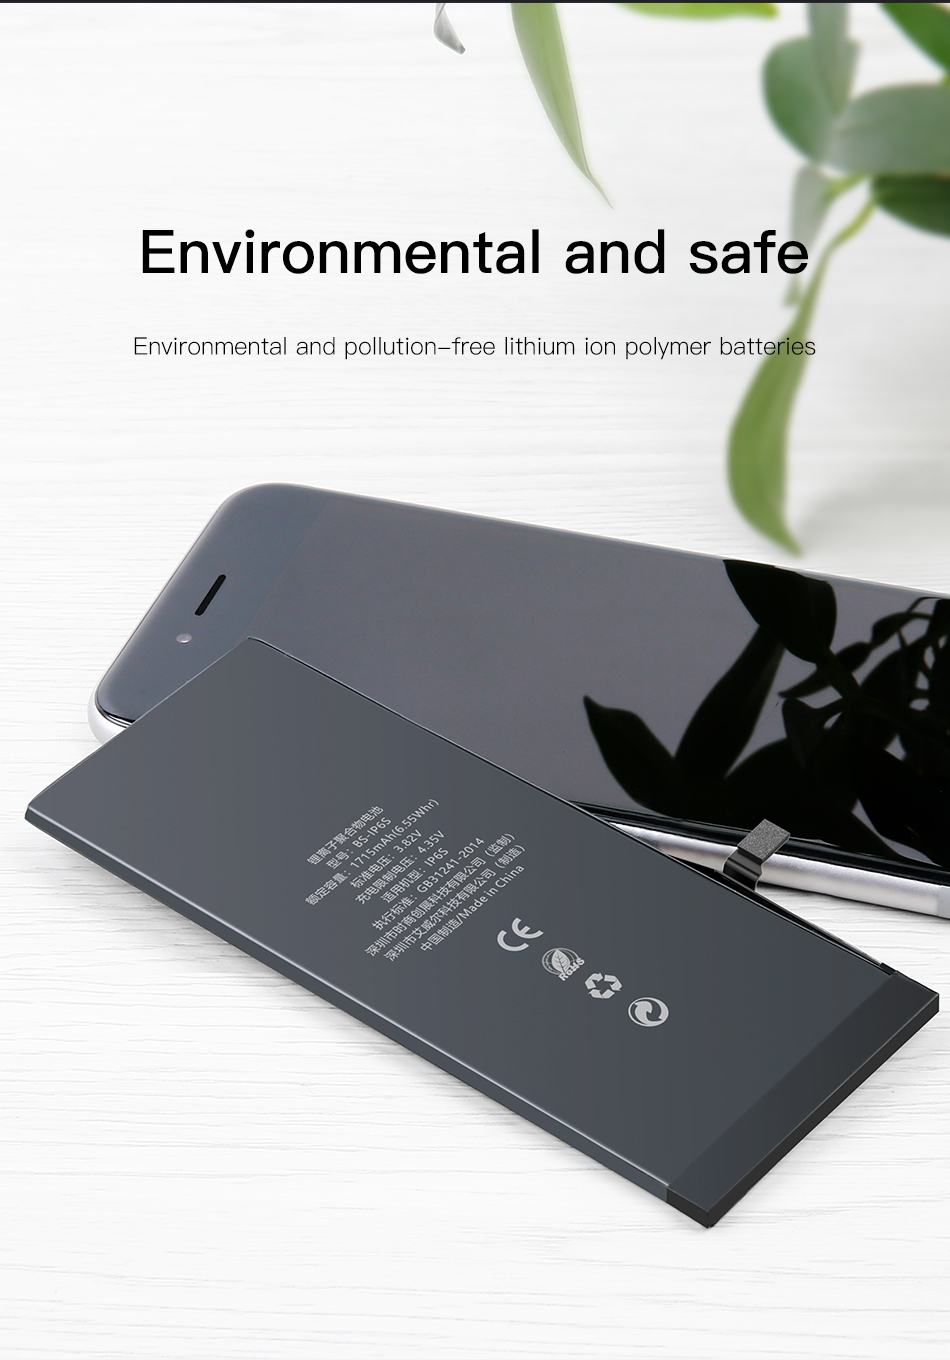 Bakeey 1810mAh Capacity Li-ion Battery Replacement for iPhone 6